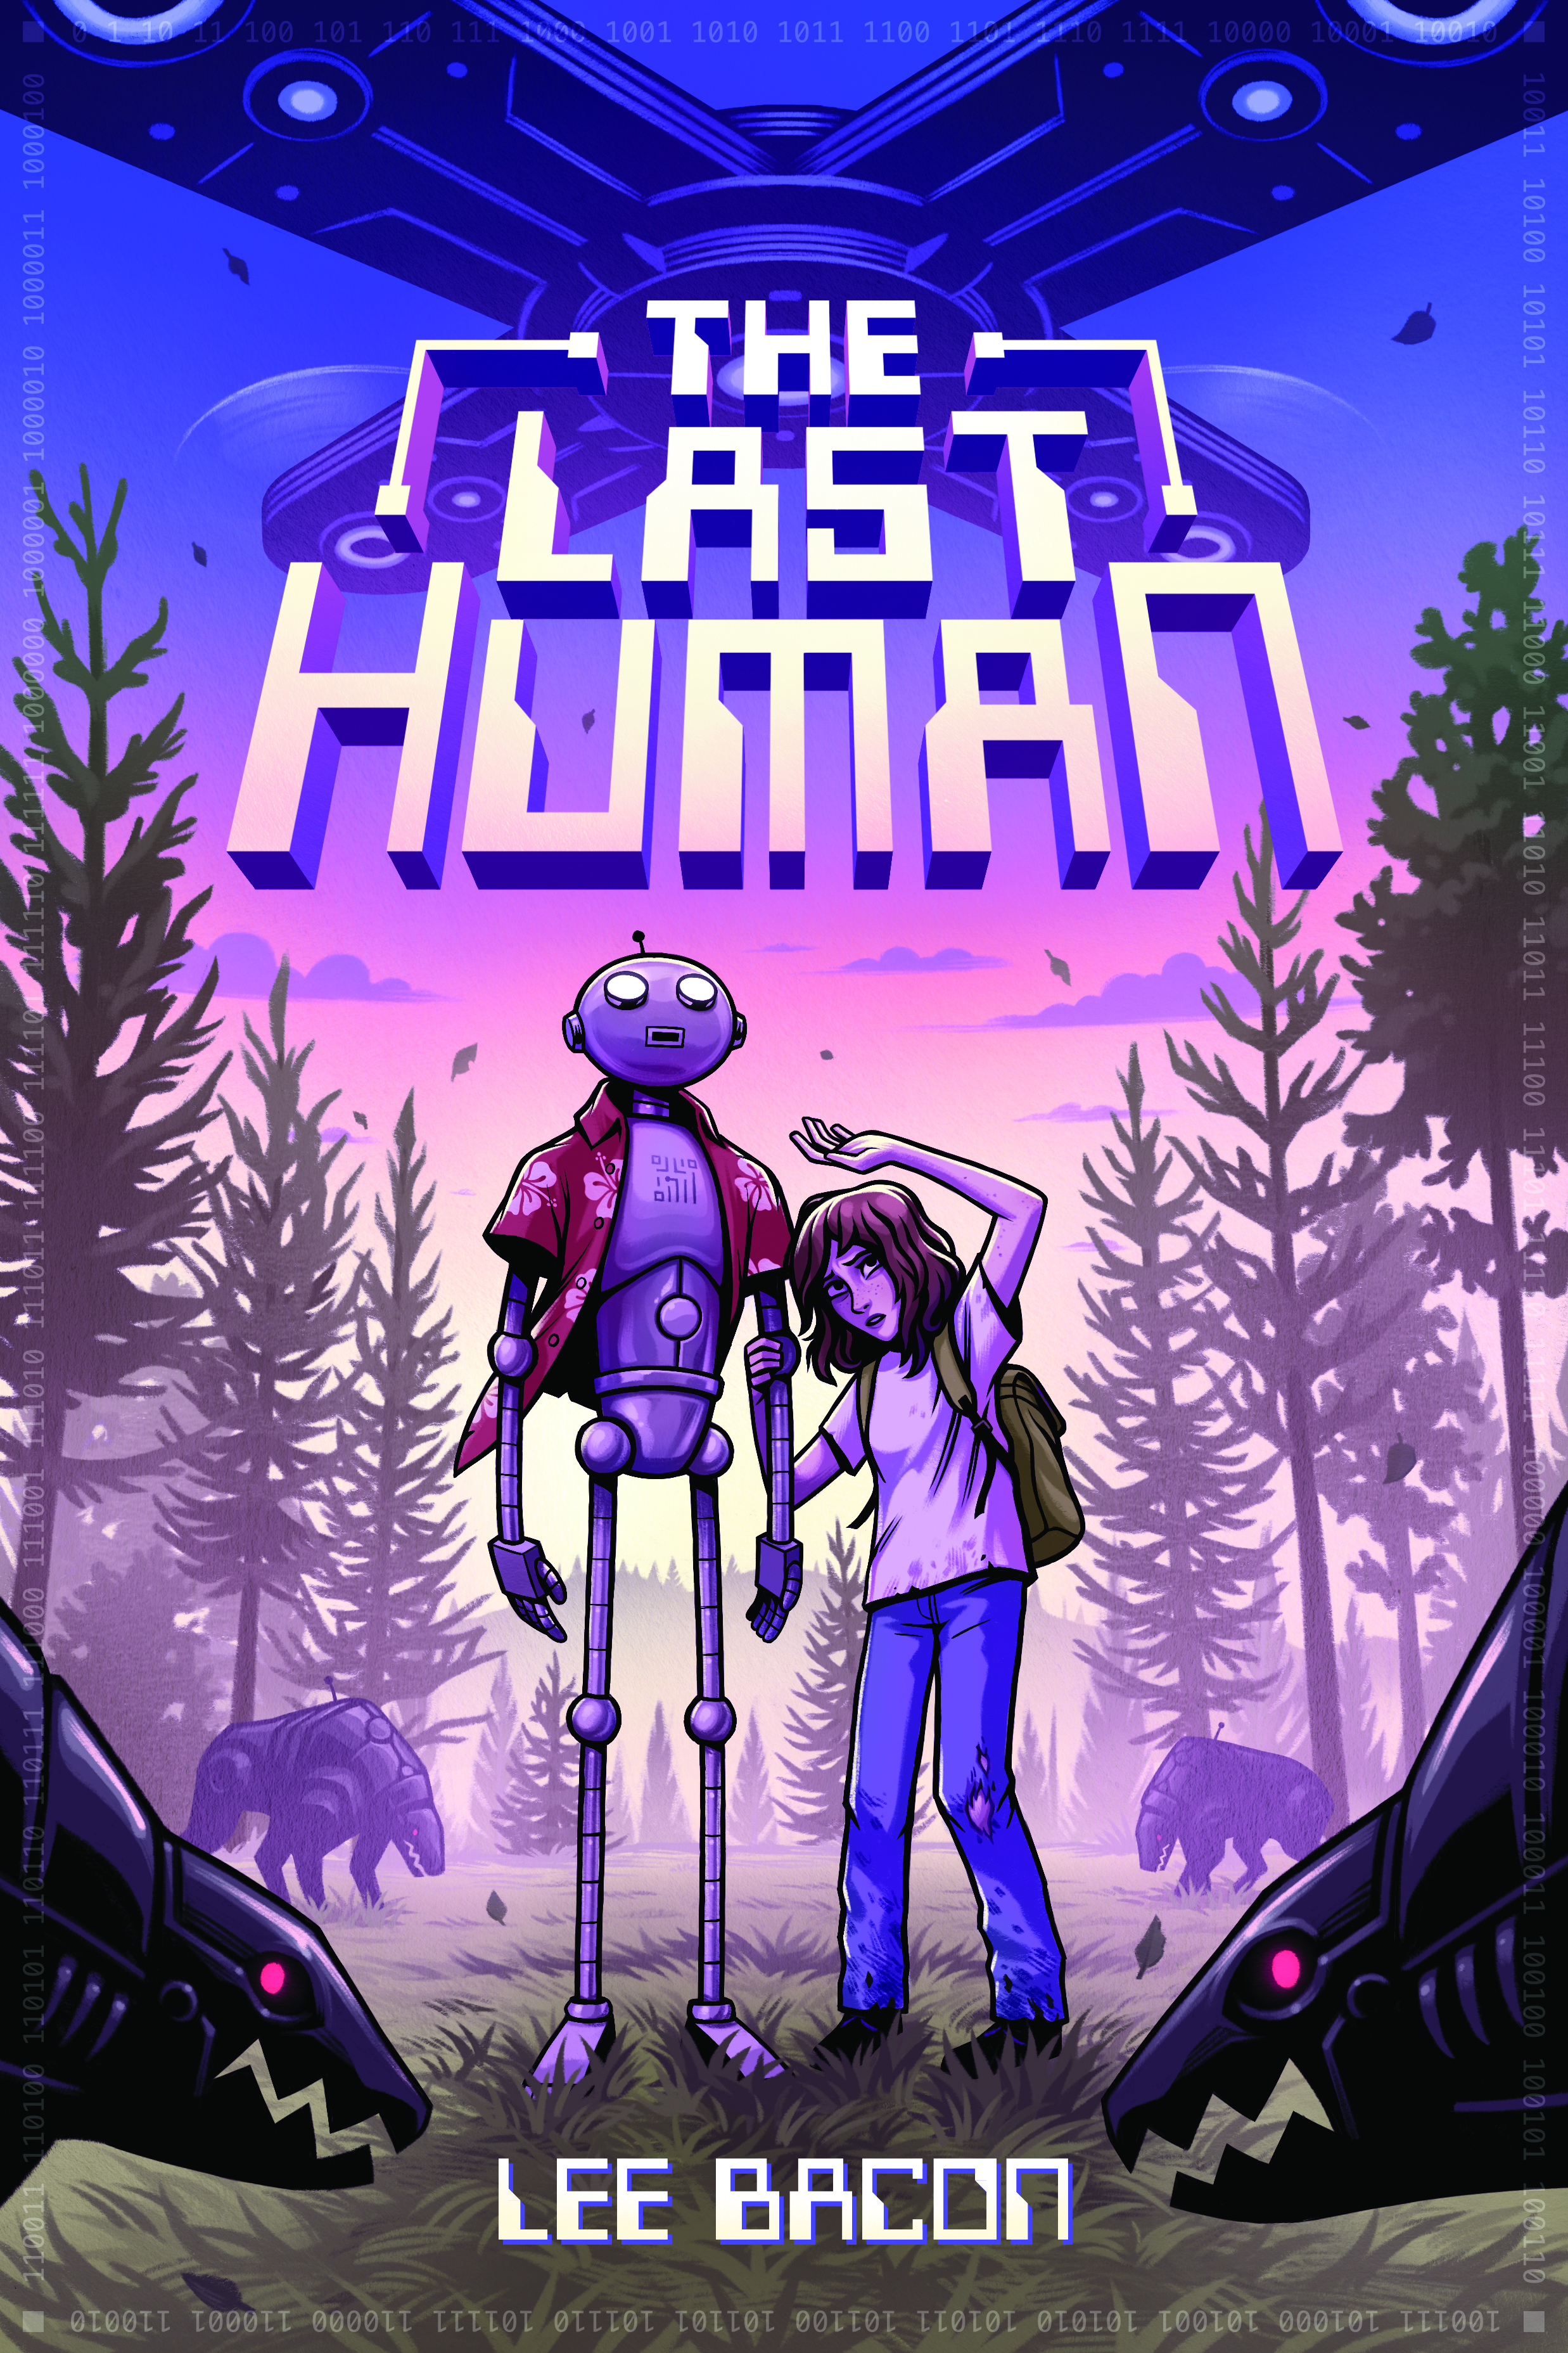 The Last HumanLee Bacon - Soon to be a major motion picture from the producers of Spider-Man: Into the Spider-Verse! In a future when humans are believed to be extinct, what will one curious robot do when it finds a girl who needs its help? Humorous, action-packed, and poignant, The Last Human tells a story about friendship, technology, and challenging the status quo no matter the consequences.Read more here »